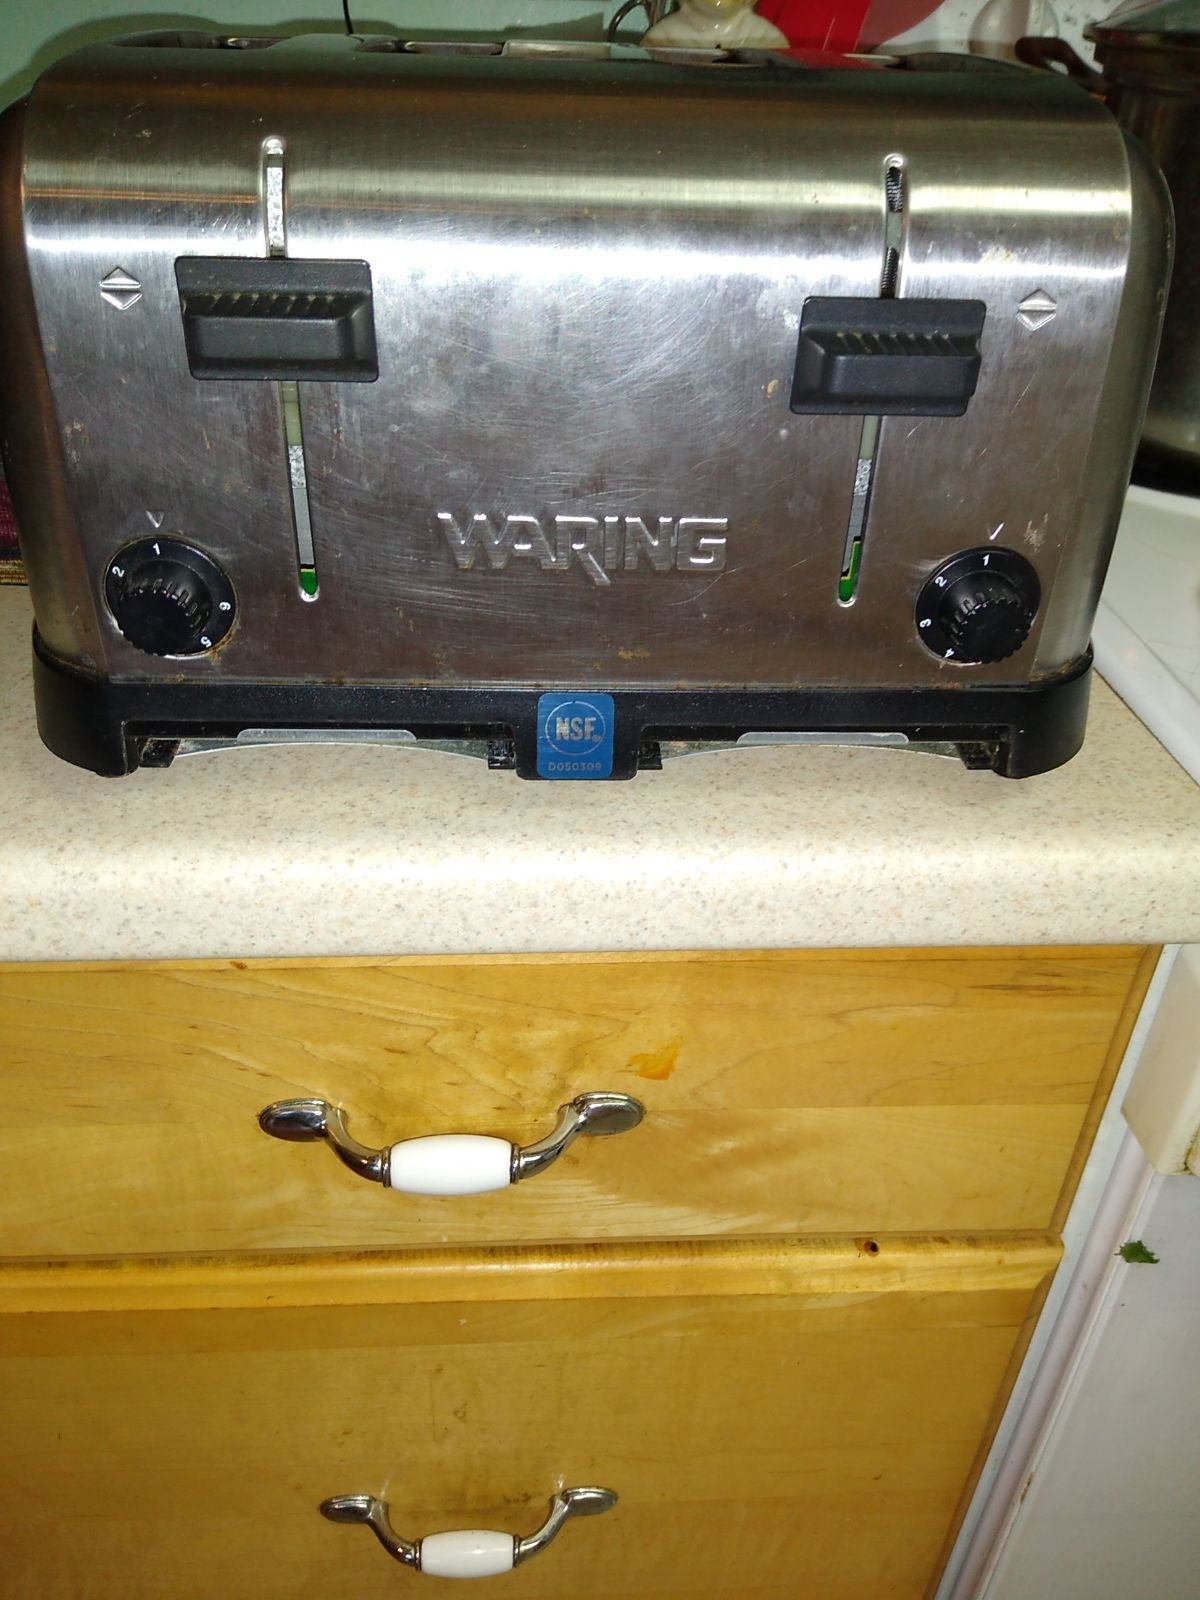 WARING COMMERCIAL 4 SLICE TOASTER!